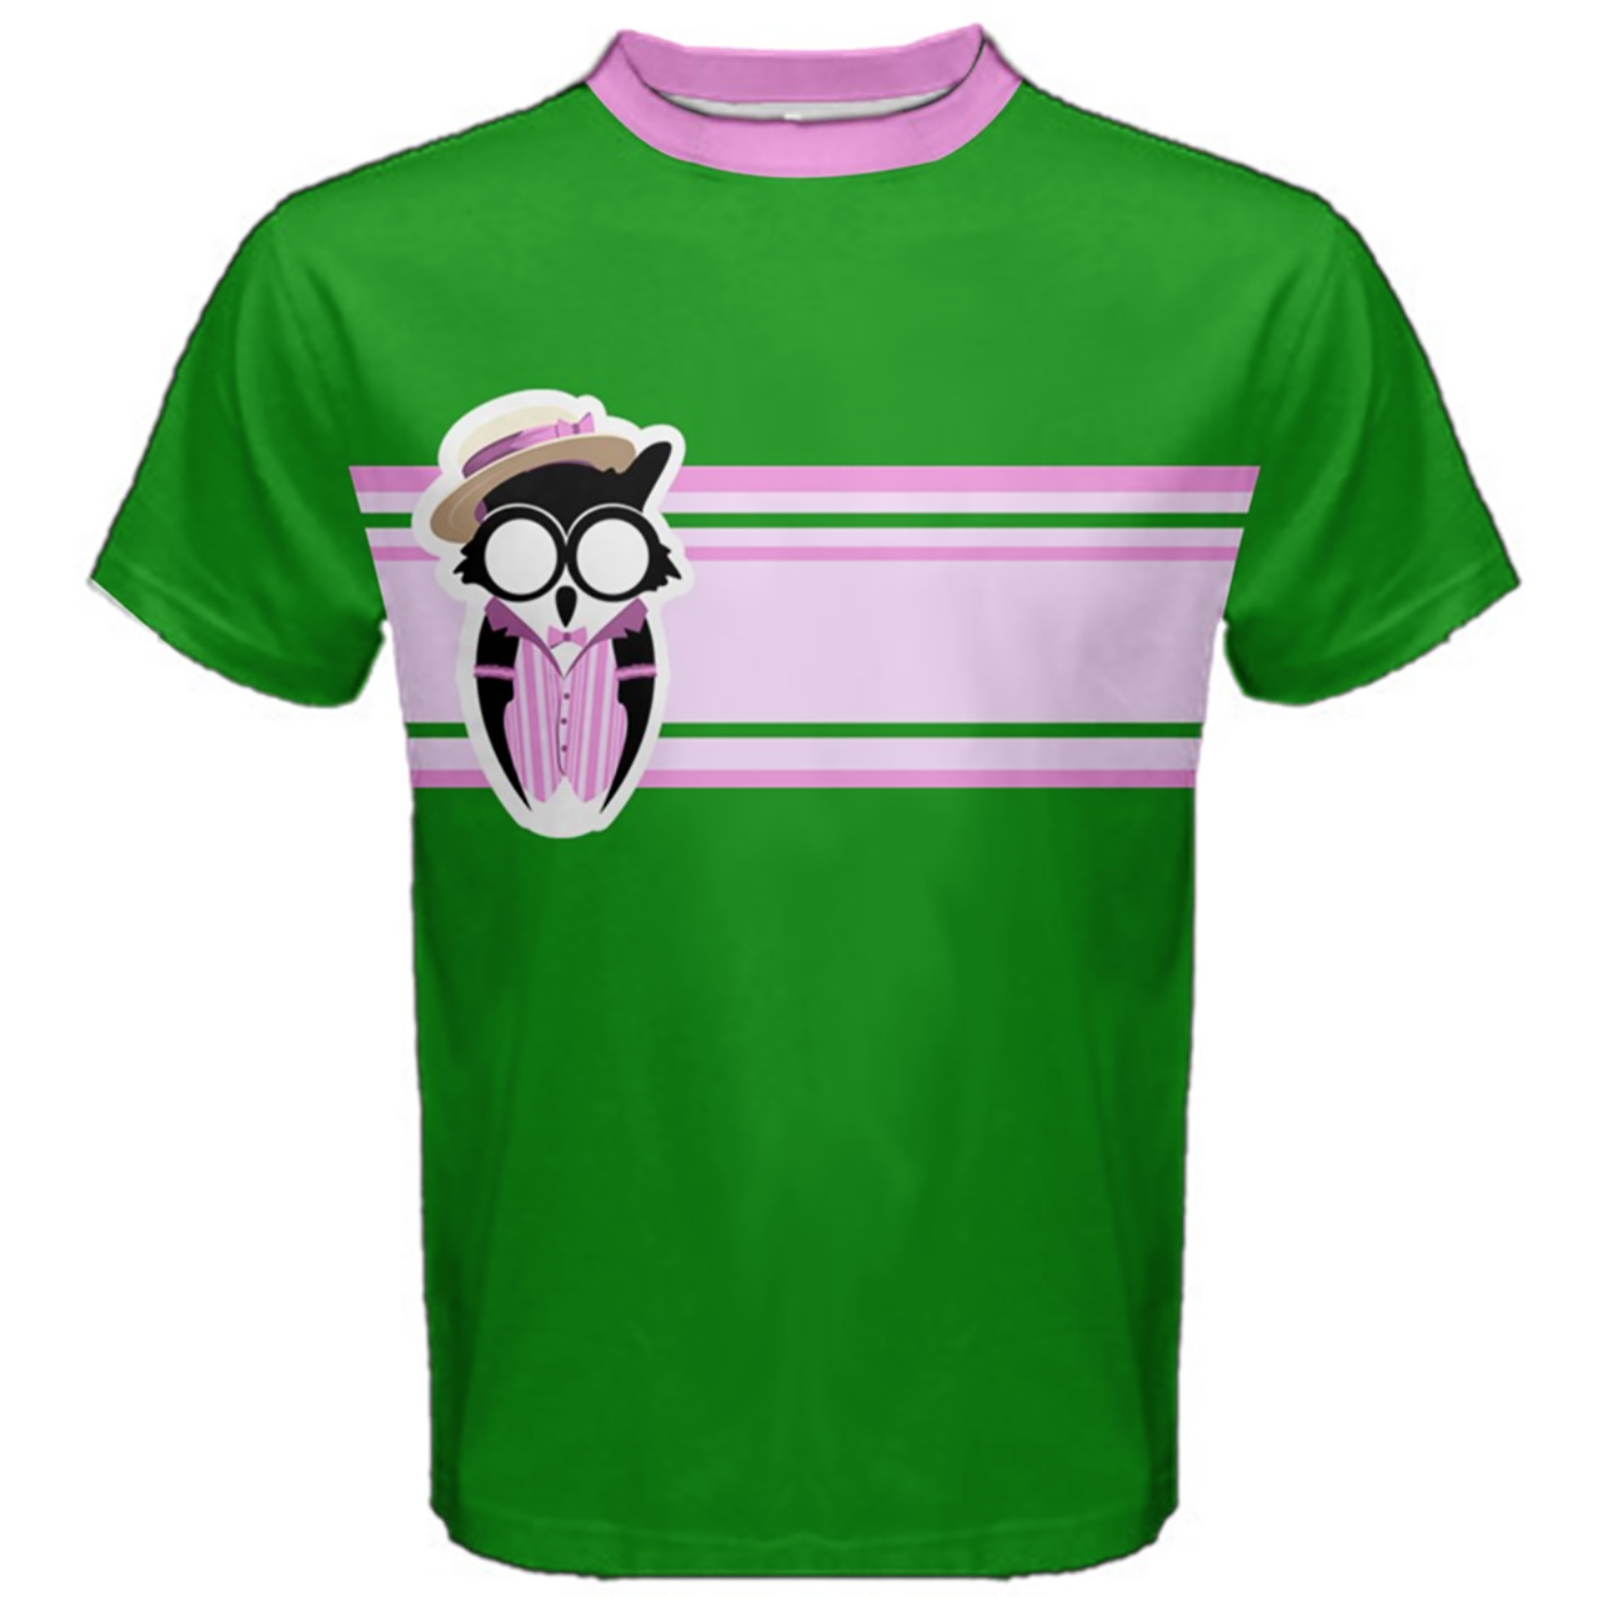 Candy Store Owl Cotton Tee (solid background)